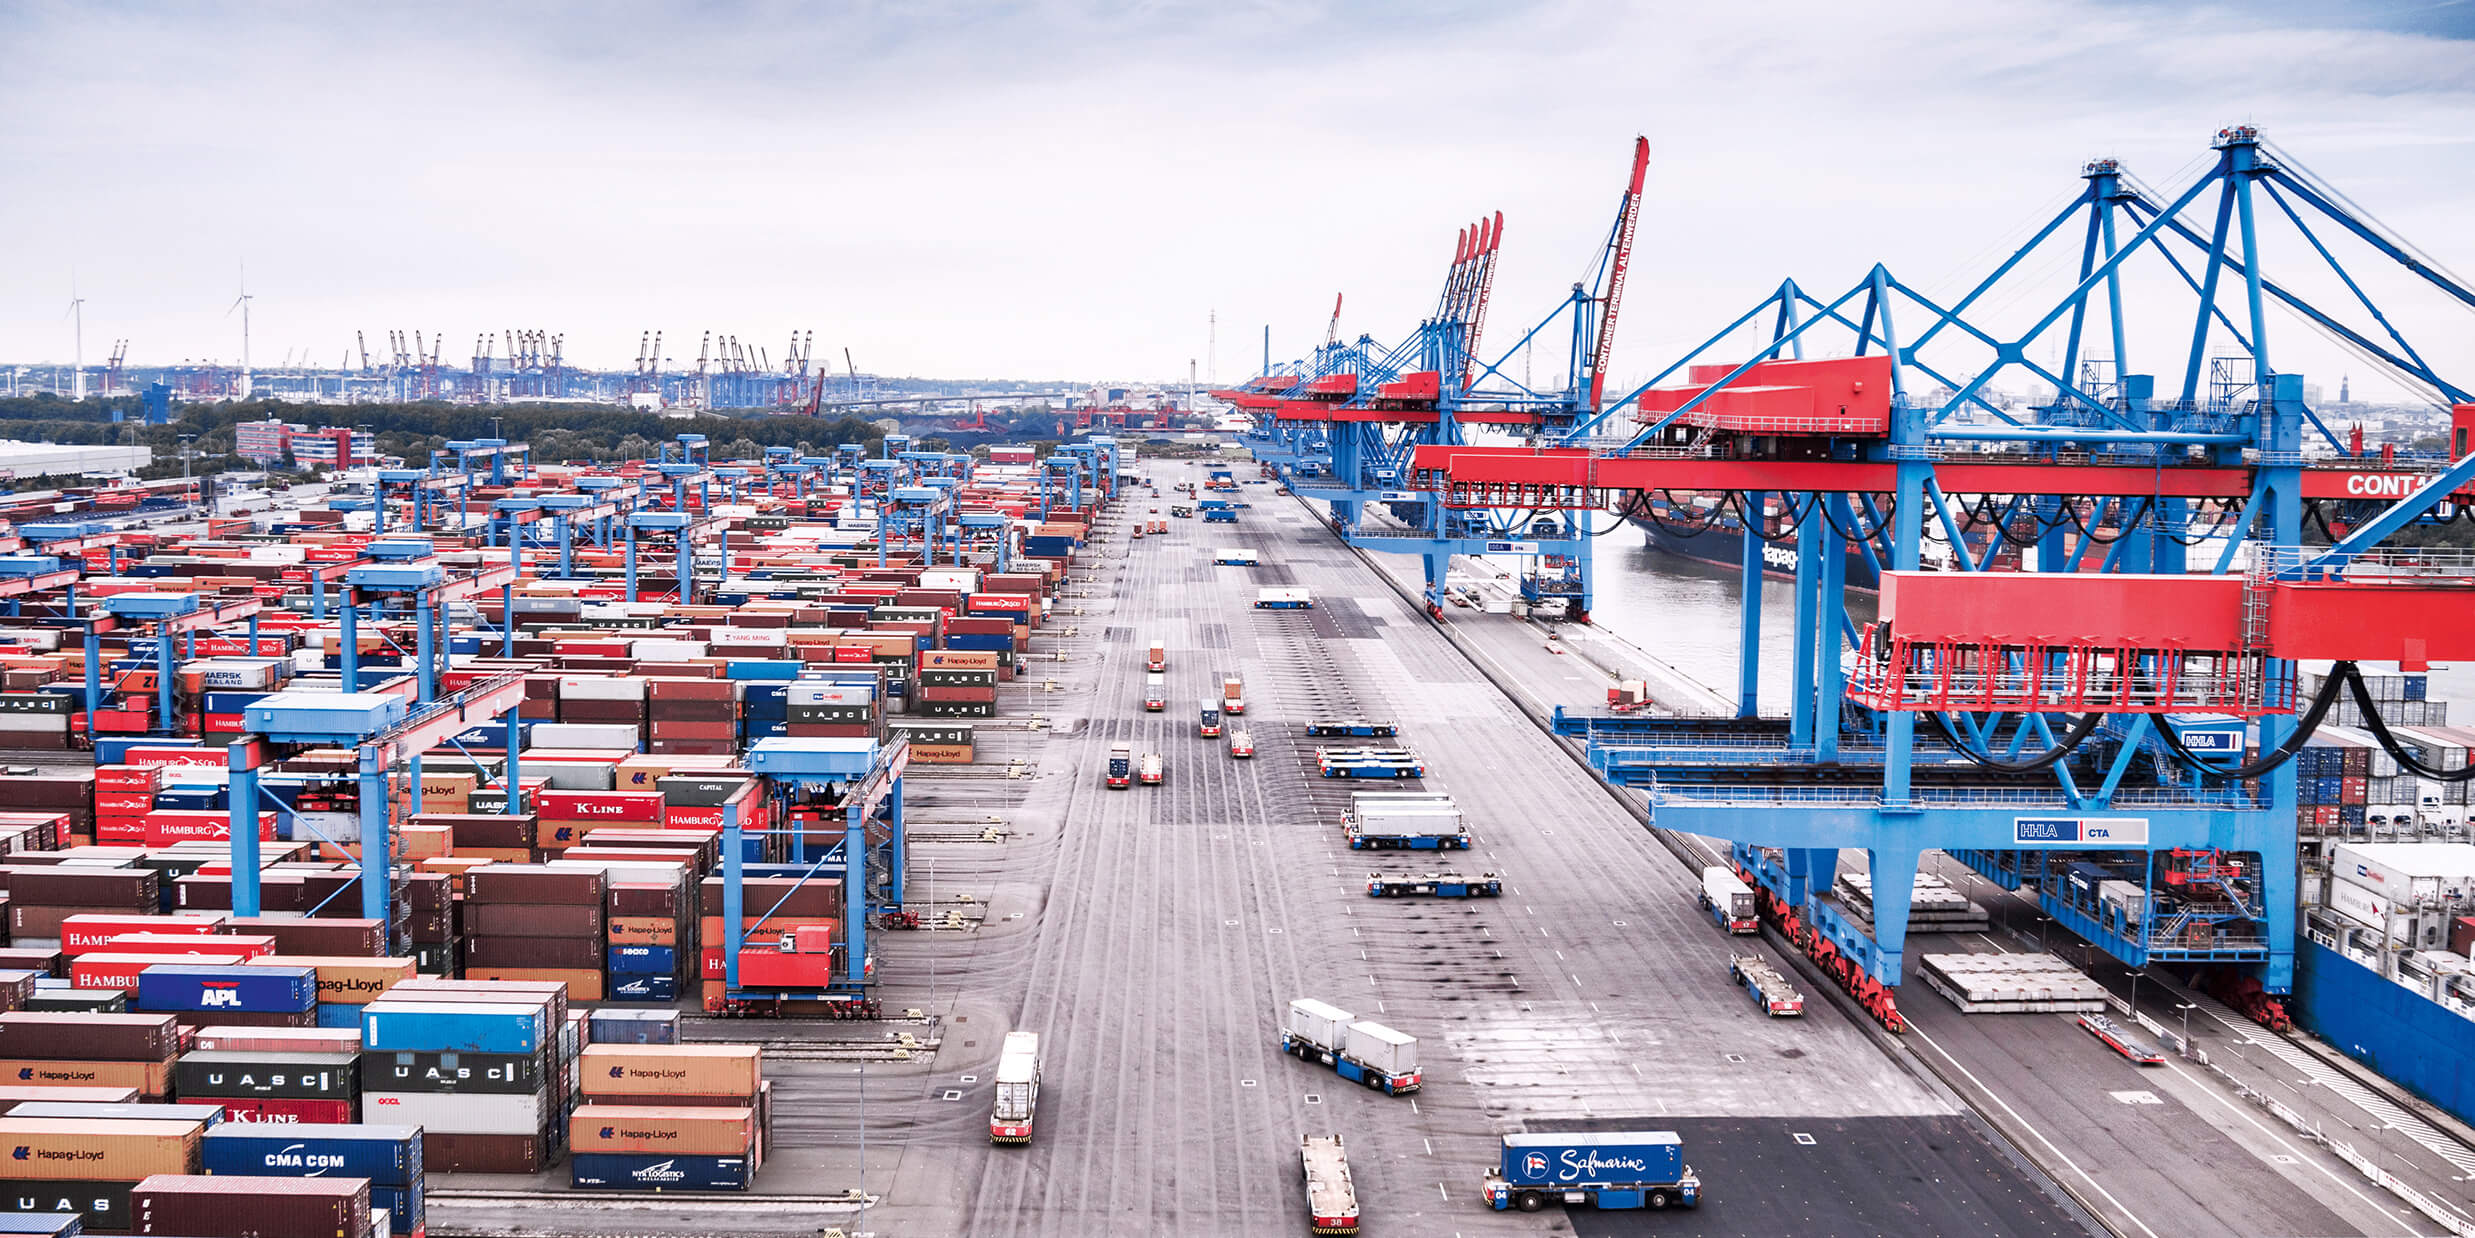 Port of the future - the Container Terminal Altenwerder (CTA